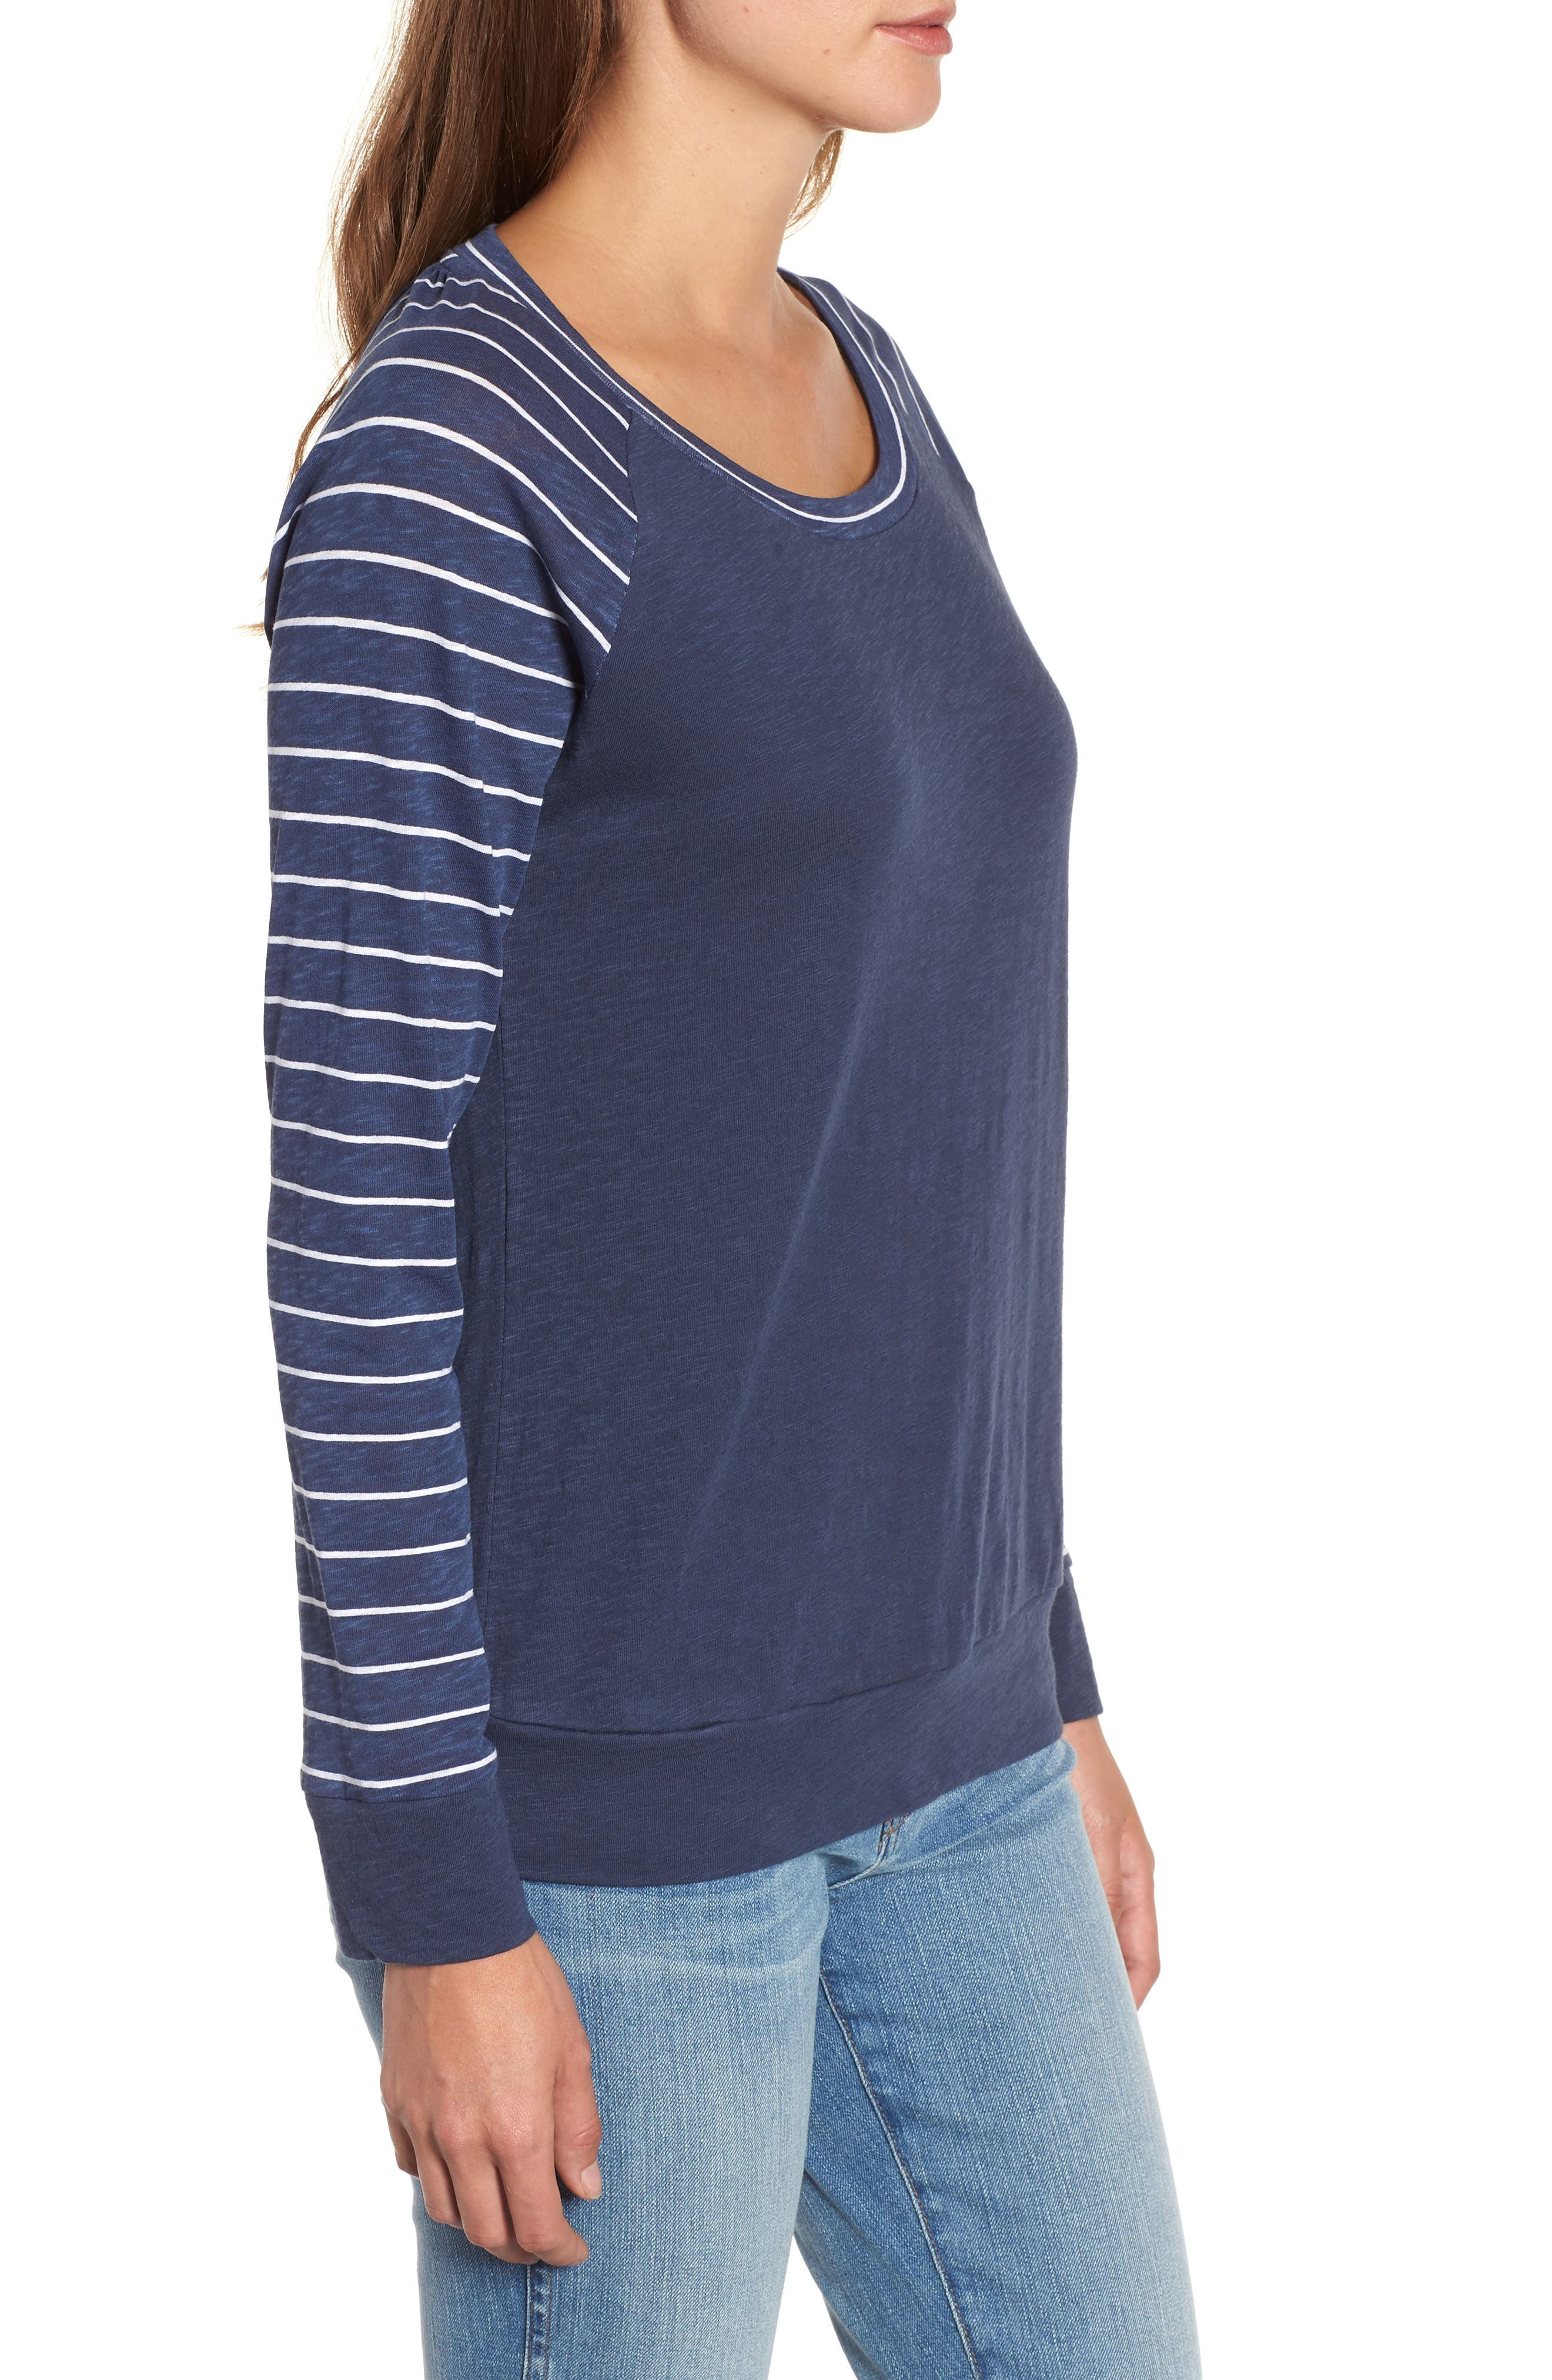 Lightweight Colorblock Cotton Tee,                             Alternate thumbnail 16, color,                             Navy- White